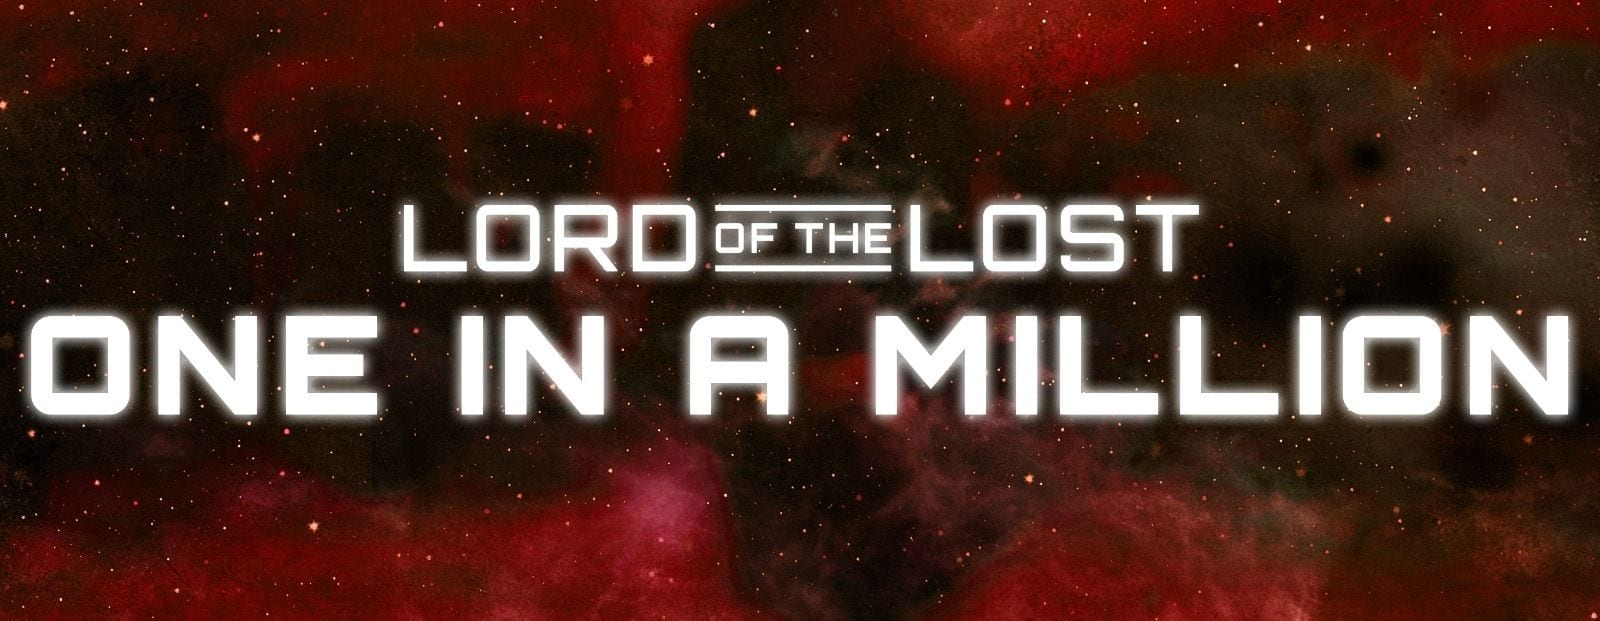 lord-of-the-los-one-in-a-million